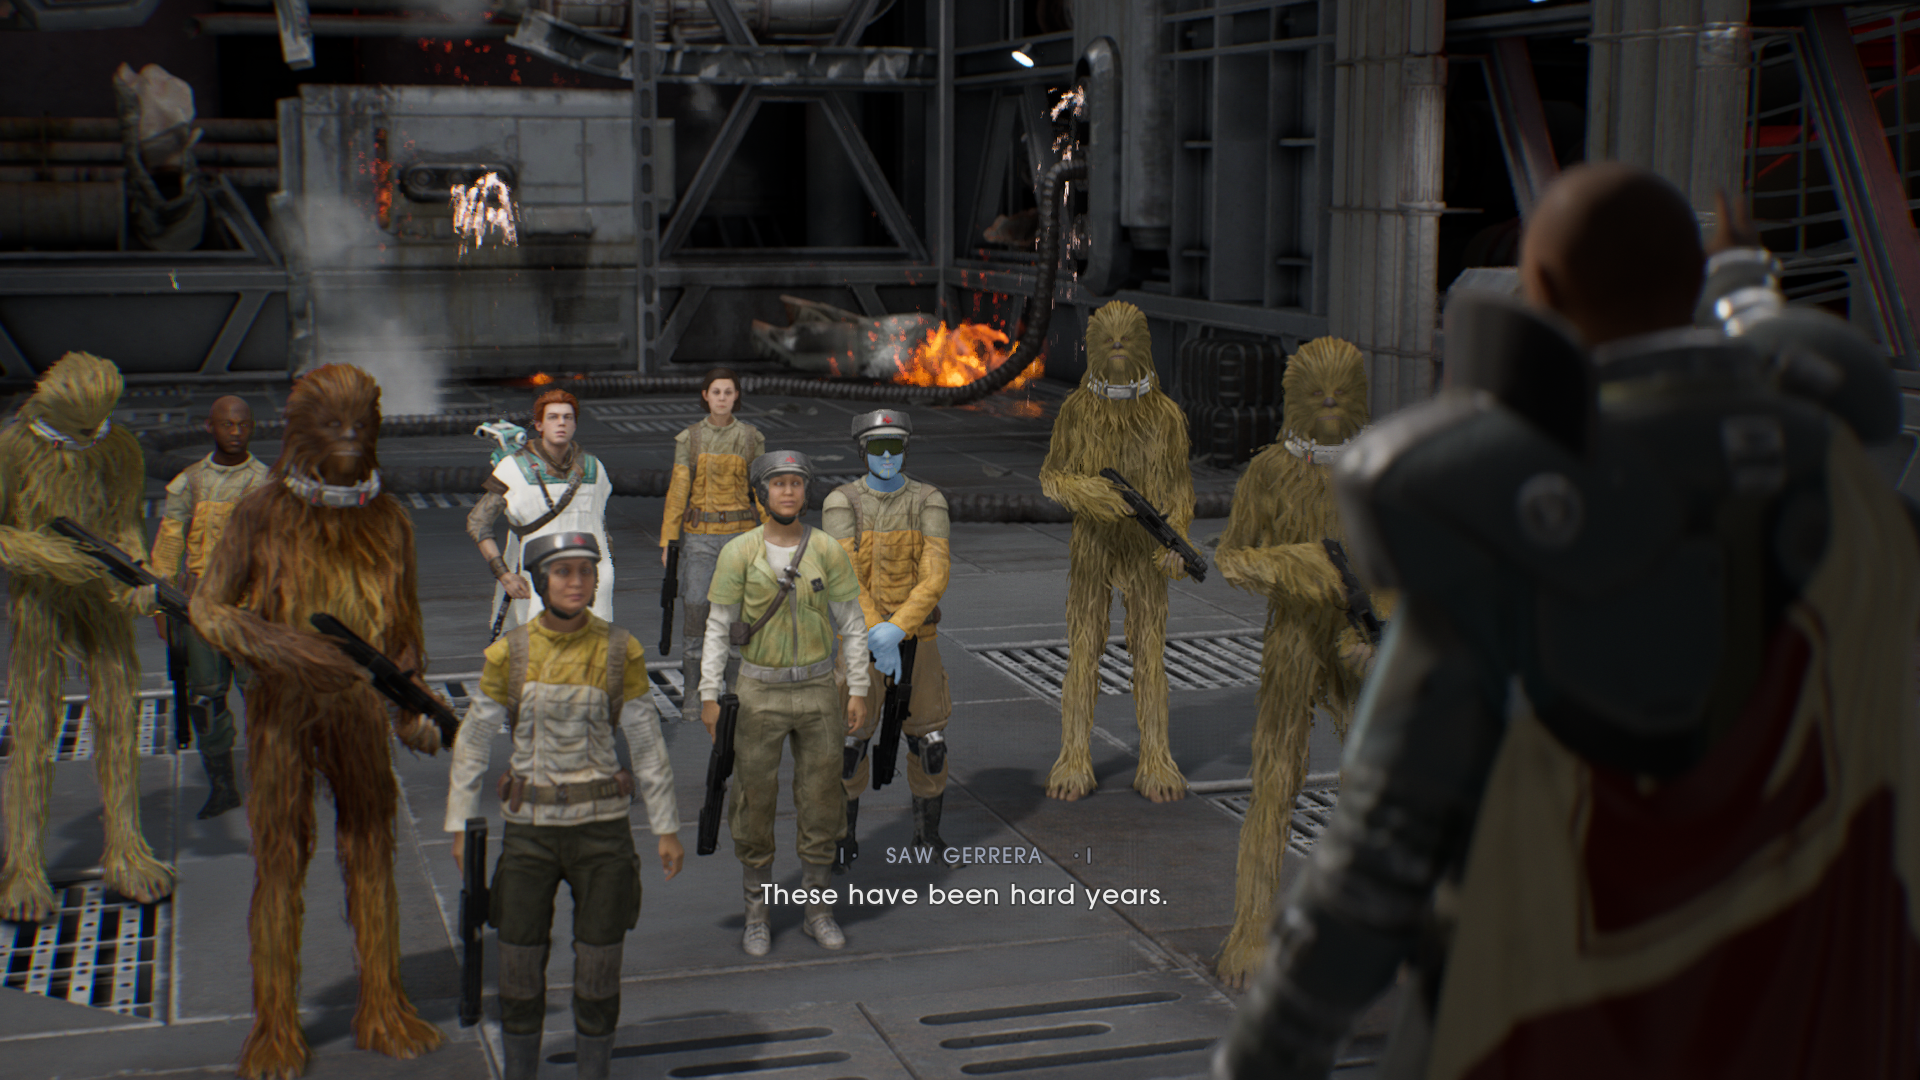 Review Star Wars Jedi Fallen Order Fbtb Fallen order takes place five years after the events of revenge of the sith and the infamous order 66. review star wars jedi fallen order